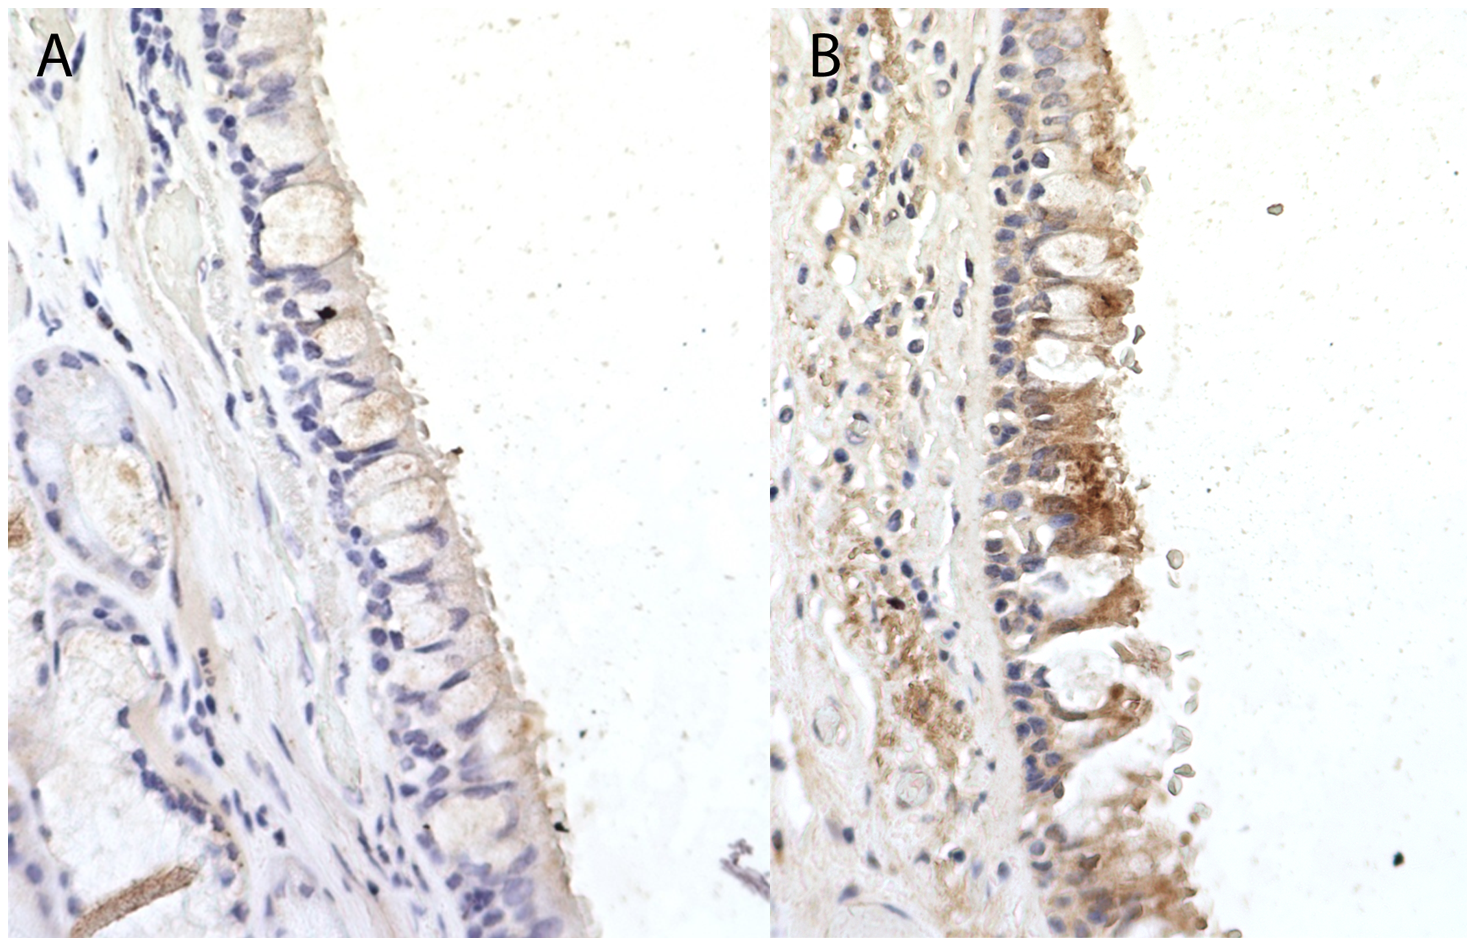 Immunohistochemistry staining for Coiled-Coil Domain-Containing Protein 38 (CCDC38) in a normal human bronchial epithelium at ×40 magnification.